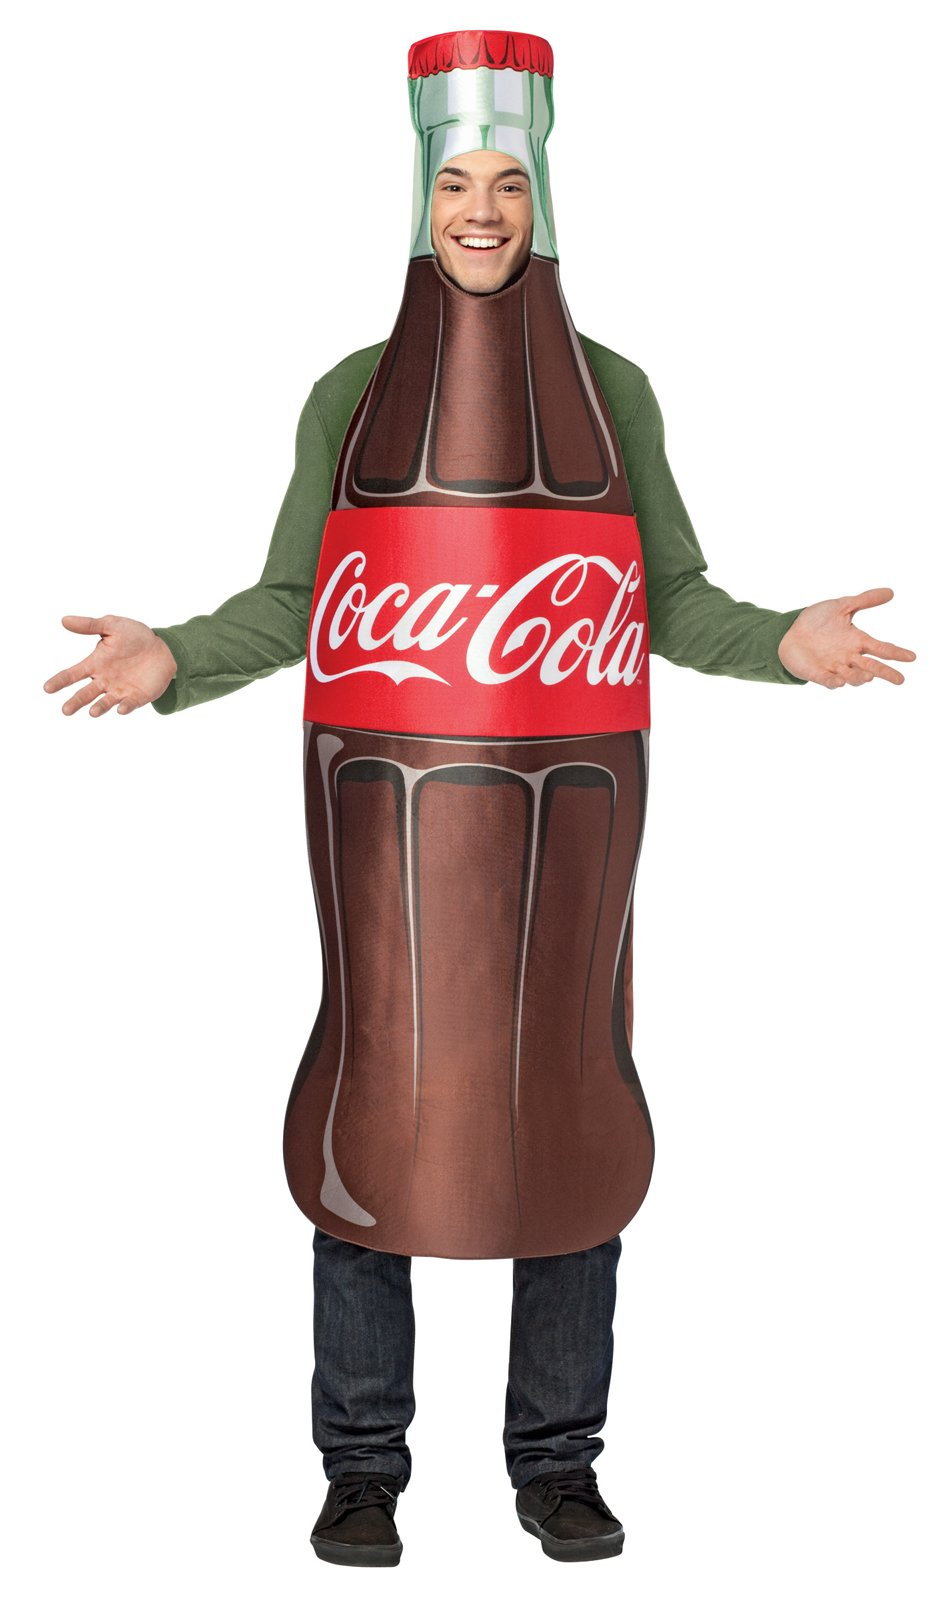 Coca-Cola - Bottle Tunic Adult Costume